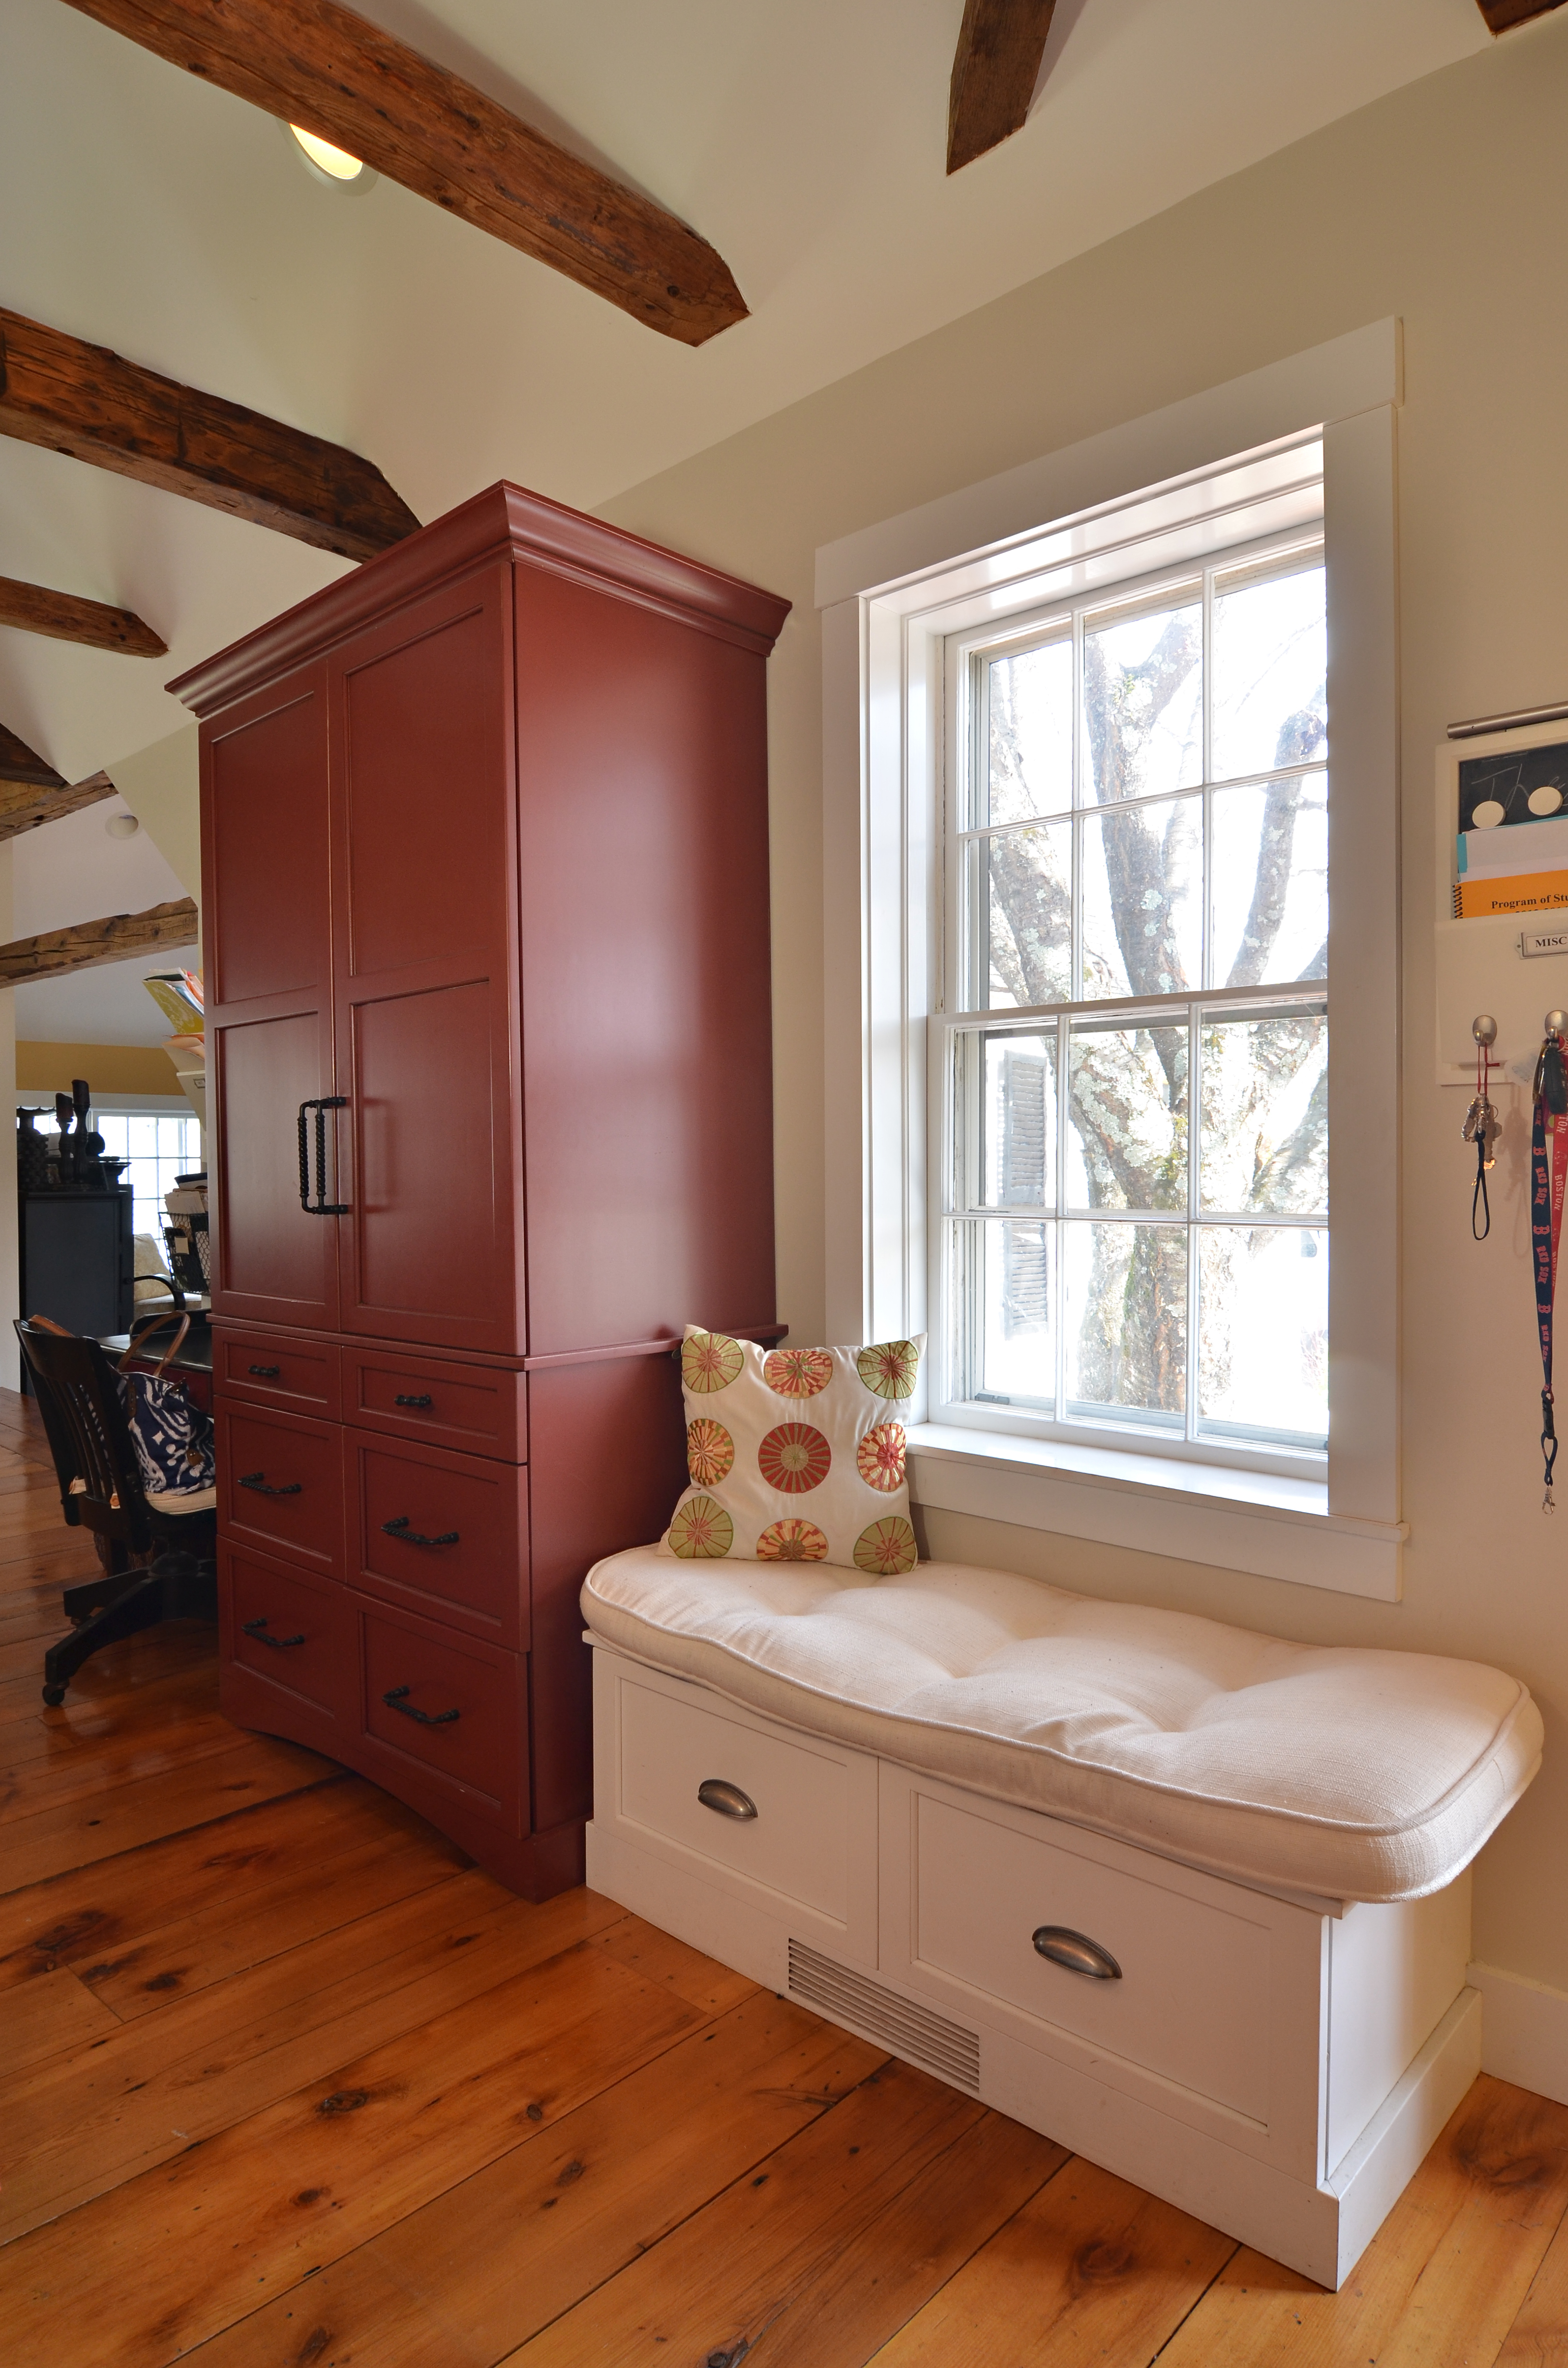 antique red kitchen cabinets outdoor accessories sale incorporating new cabinetry in an home ...